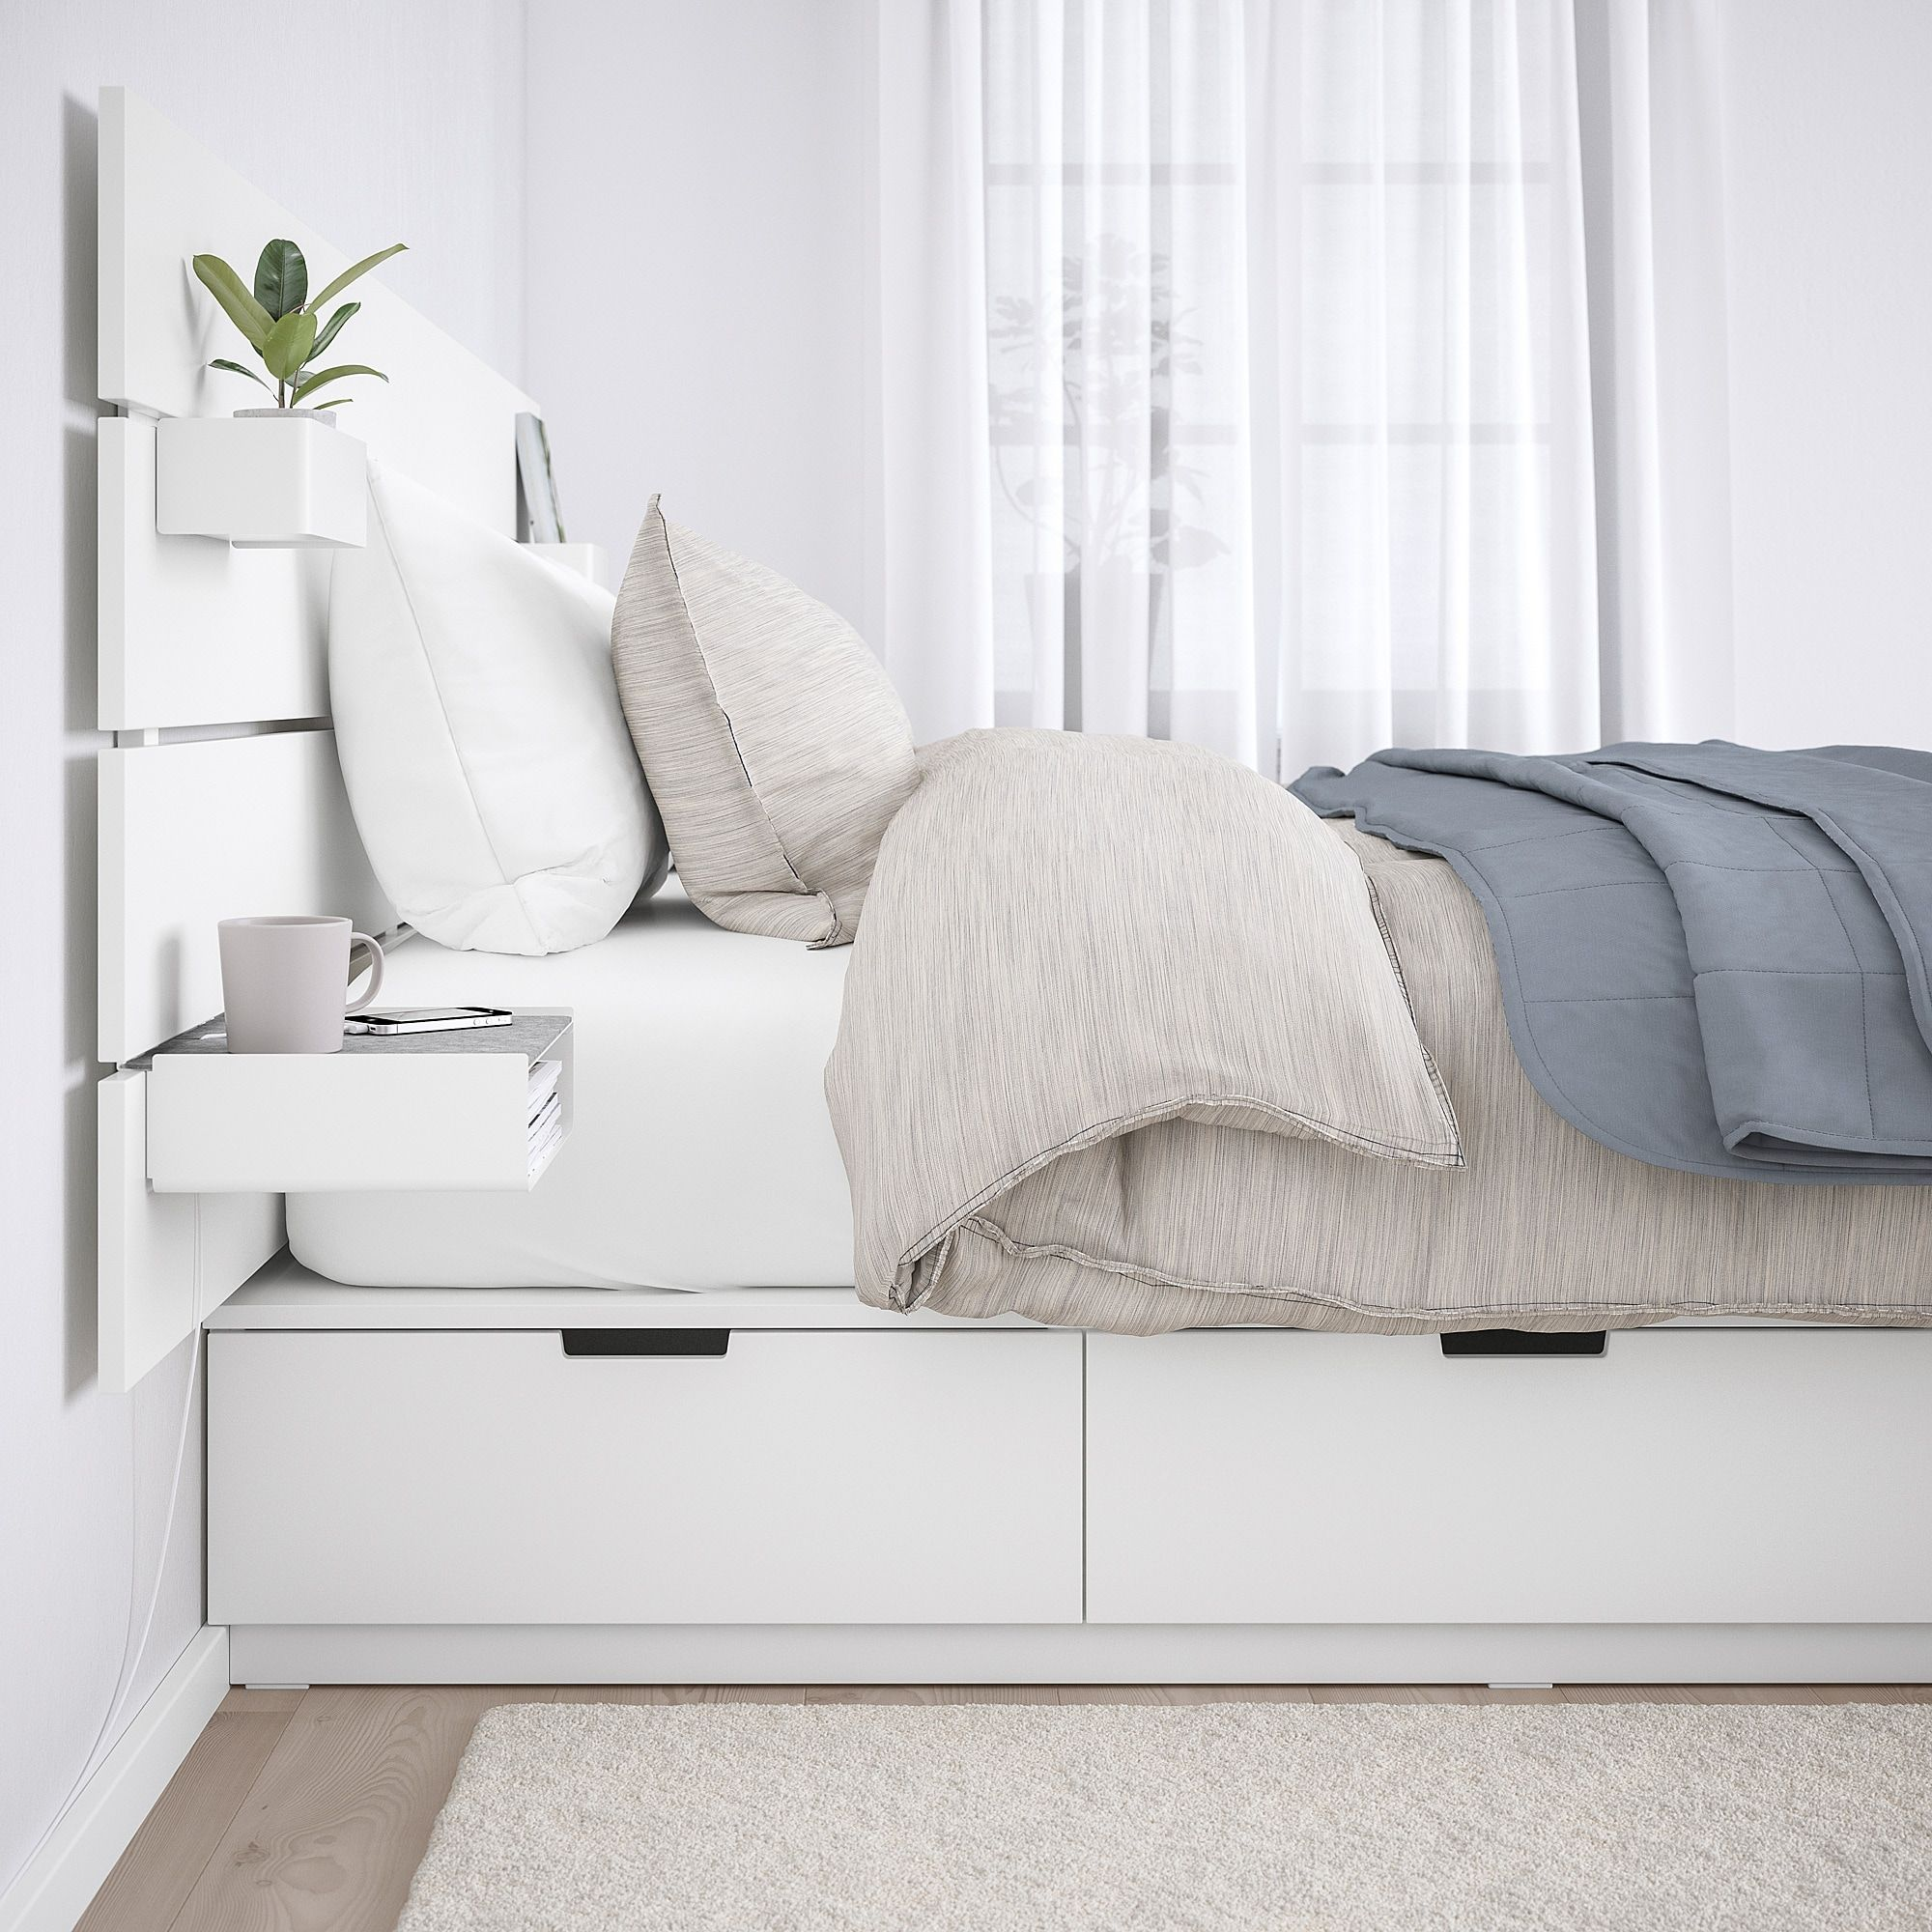 Nordli Bed With Headboard And Storage White King In 2020 Bed